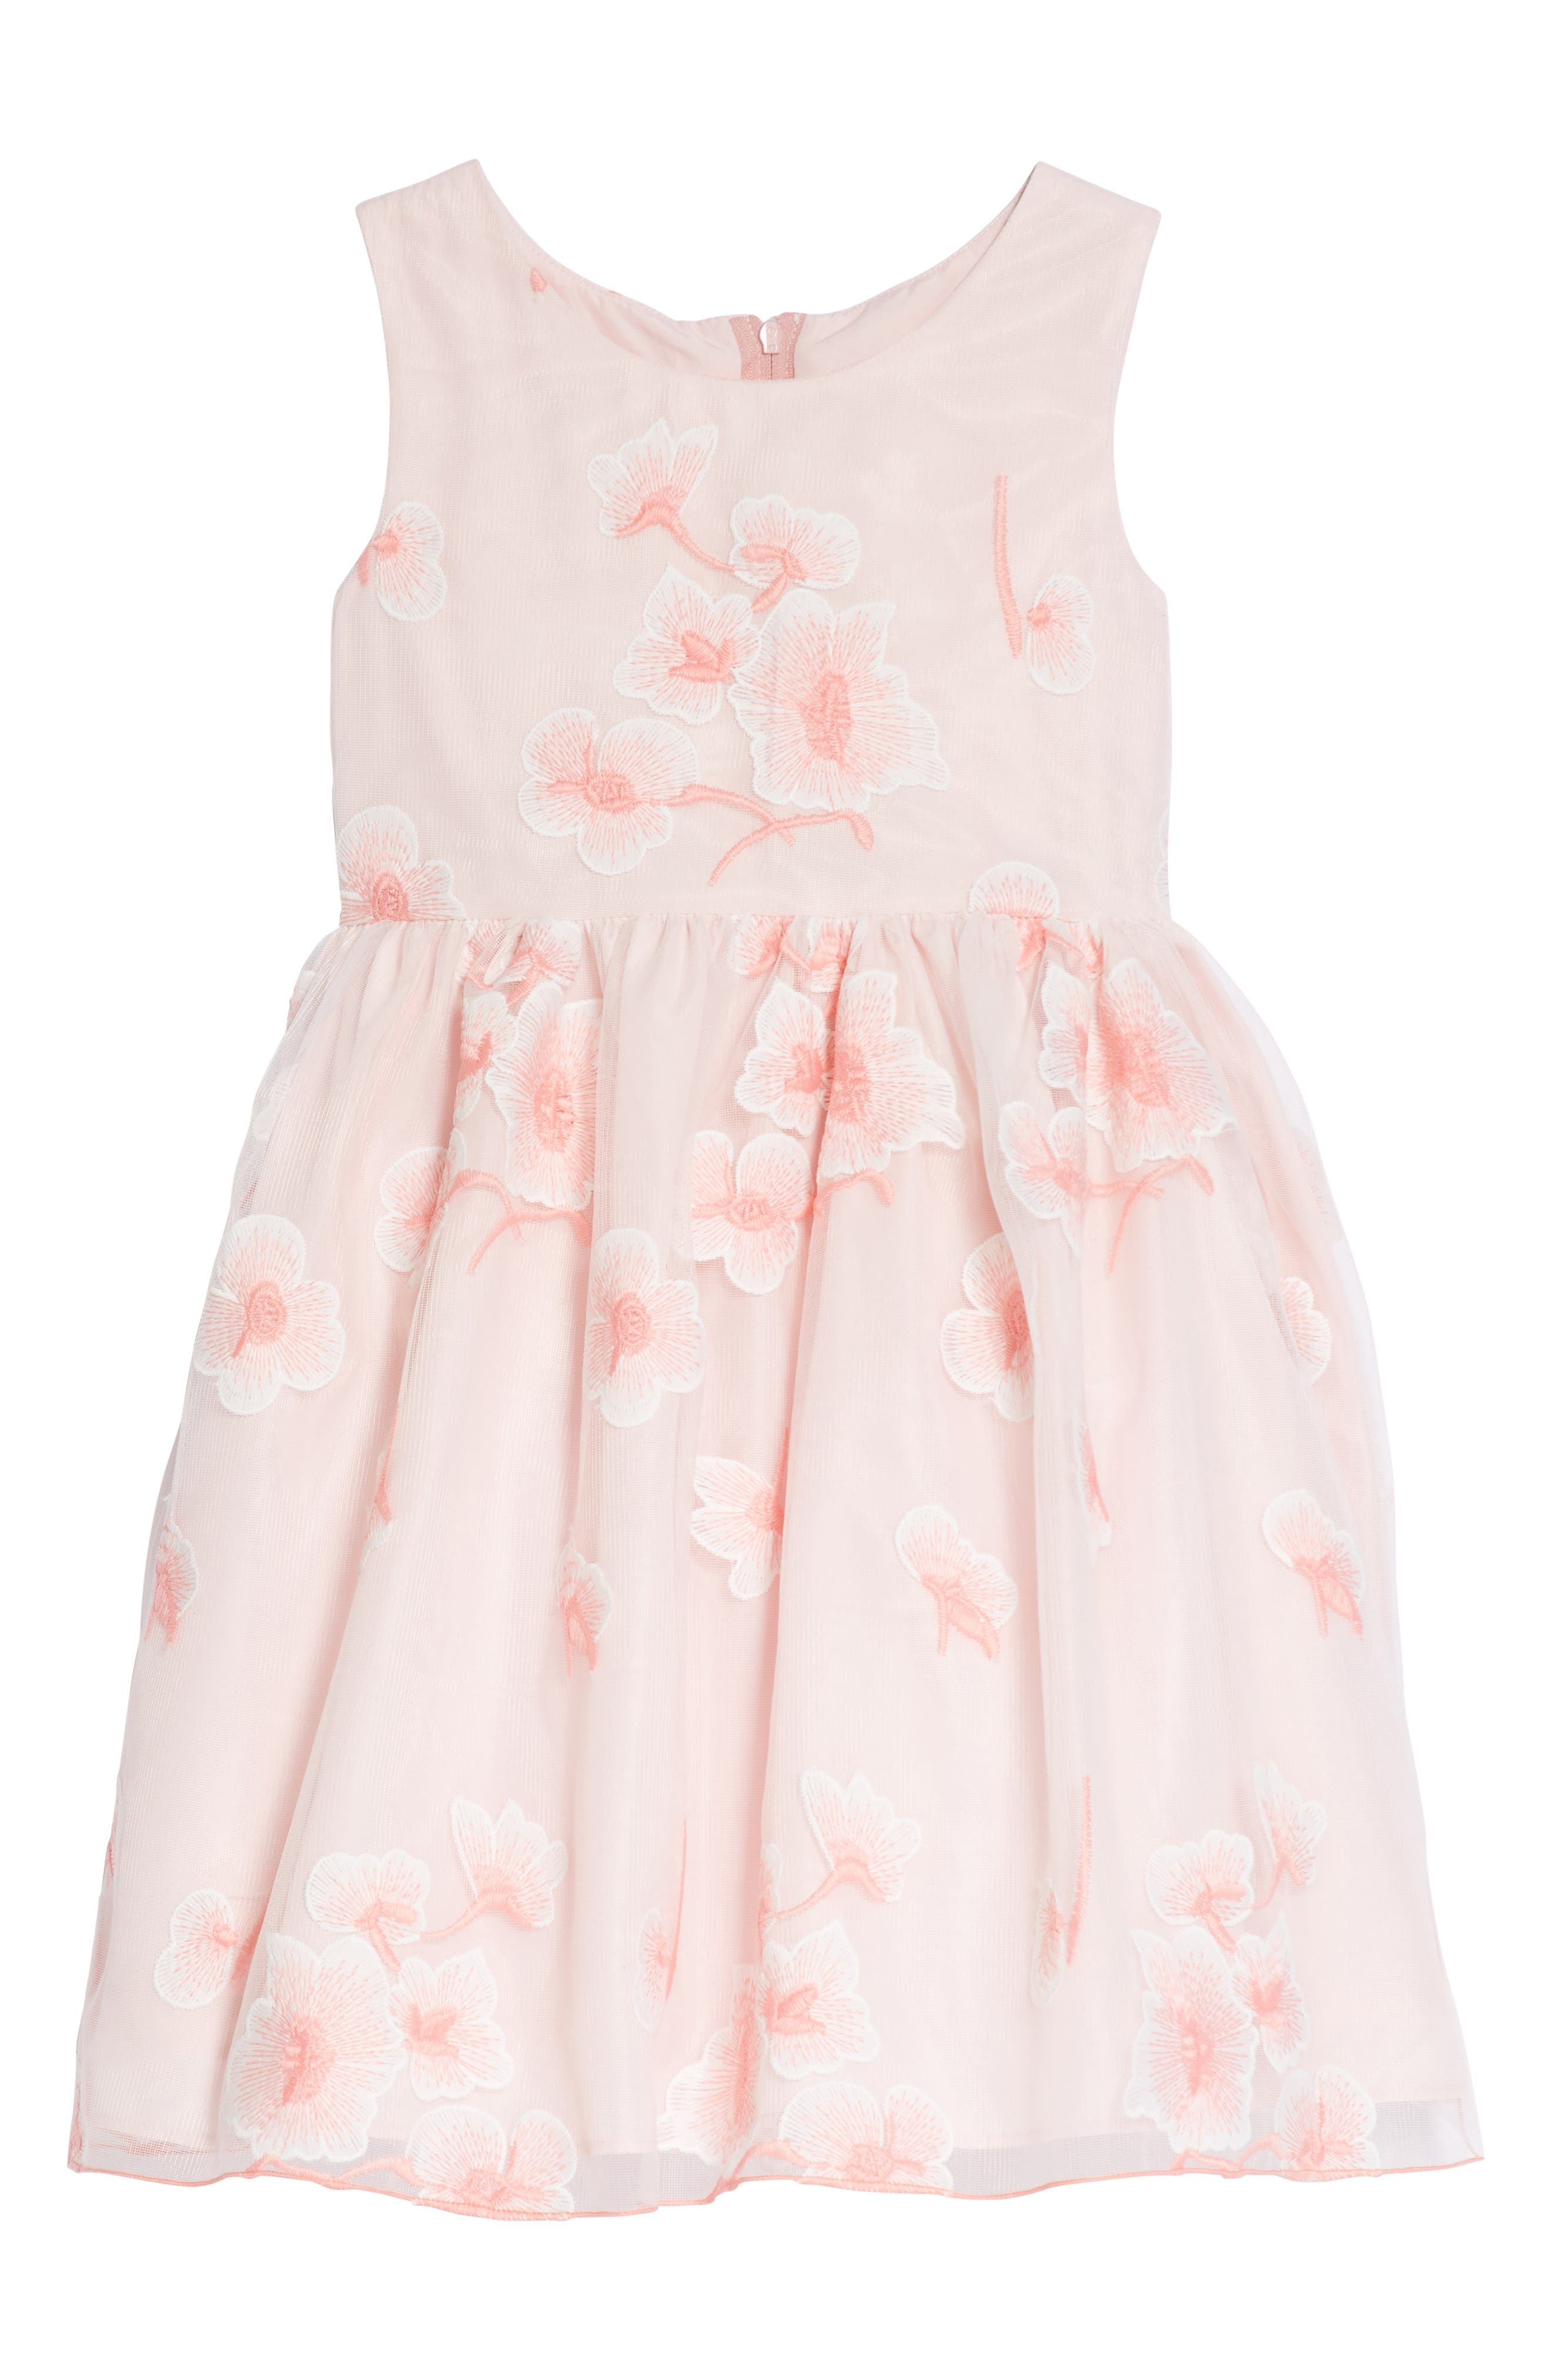 Floral Embroidered Dress,                             Main thumbnail 1, color,                             690